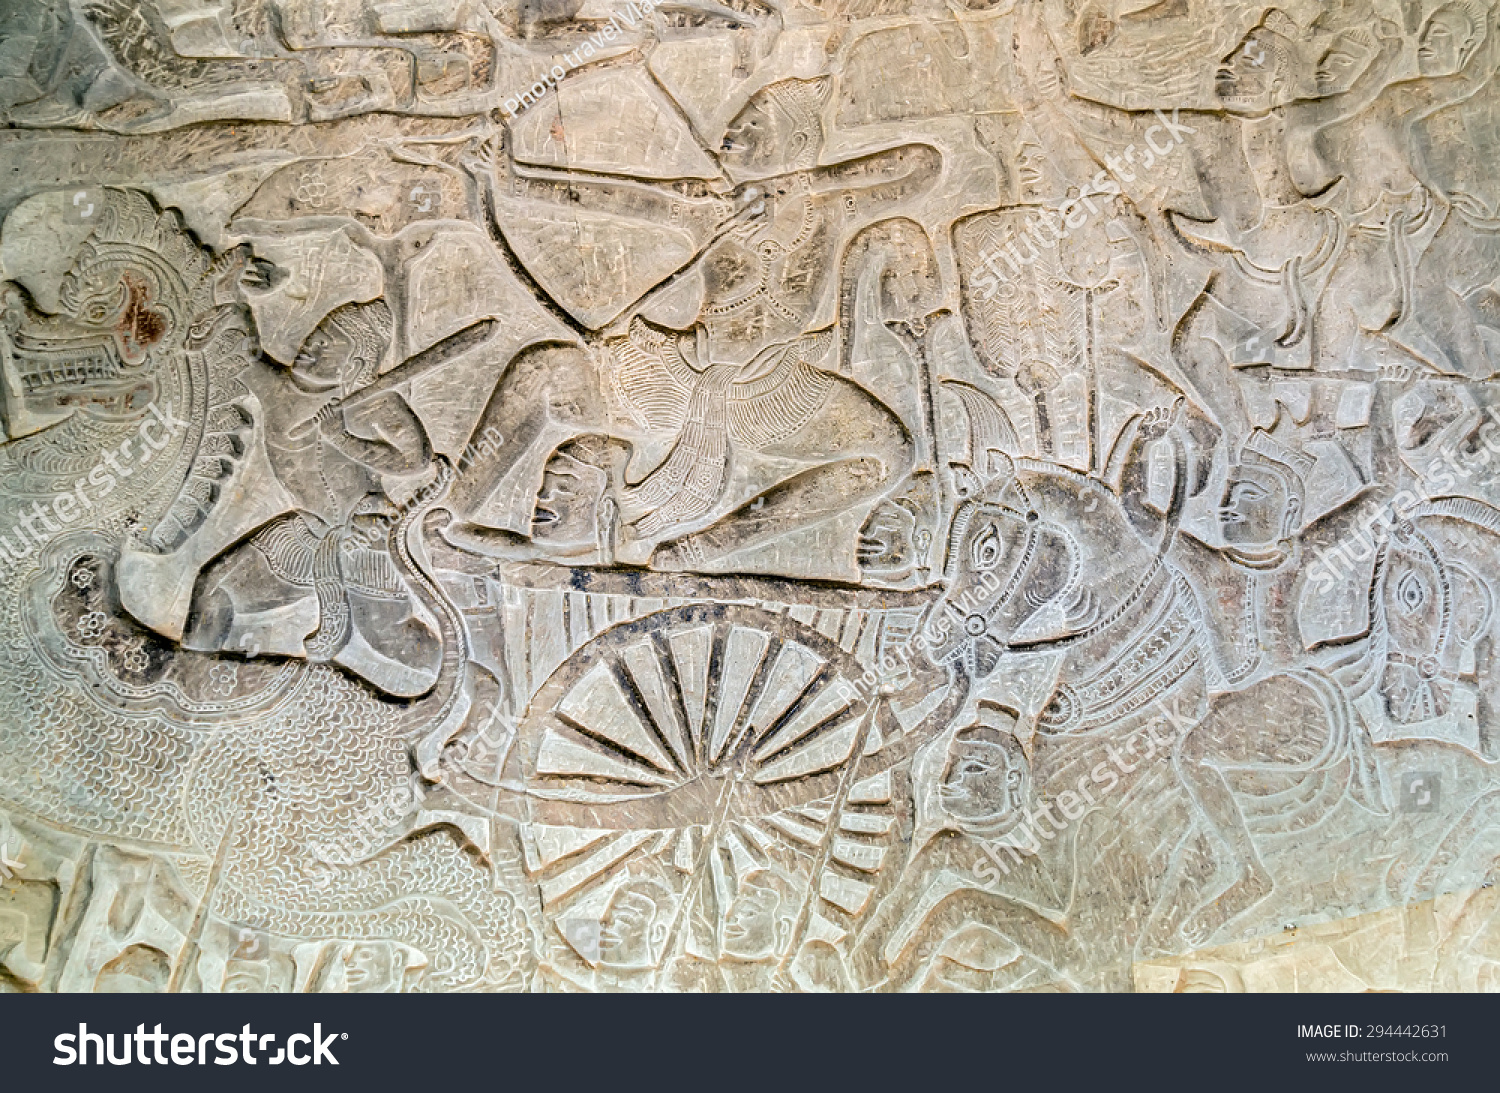 Khmer relief carving of gods fighting demons inner wall